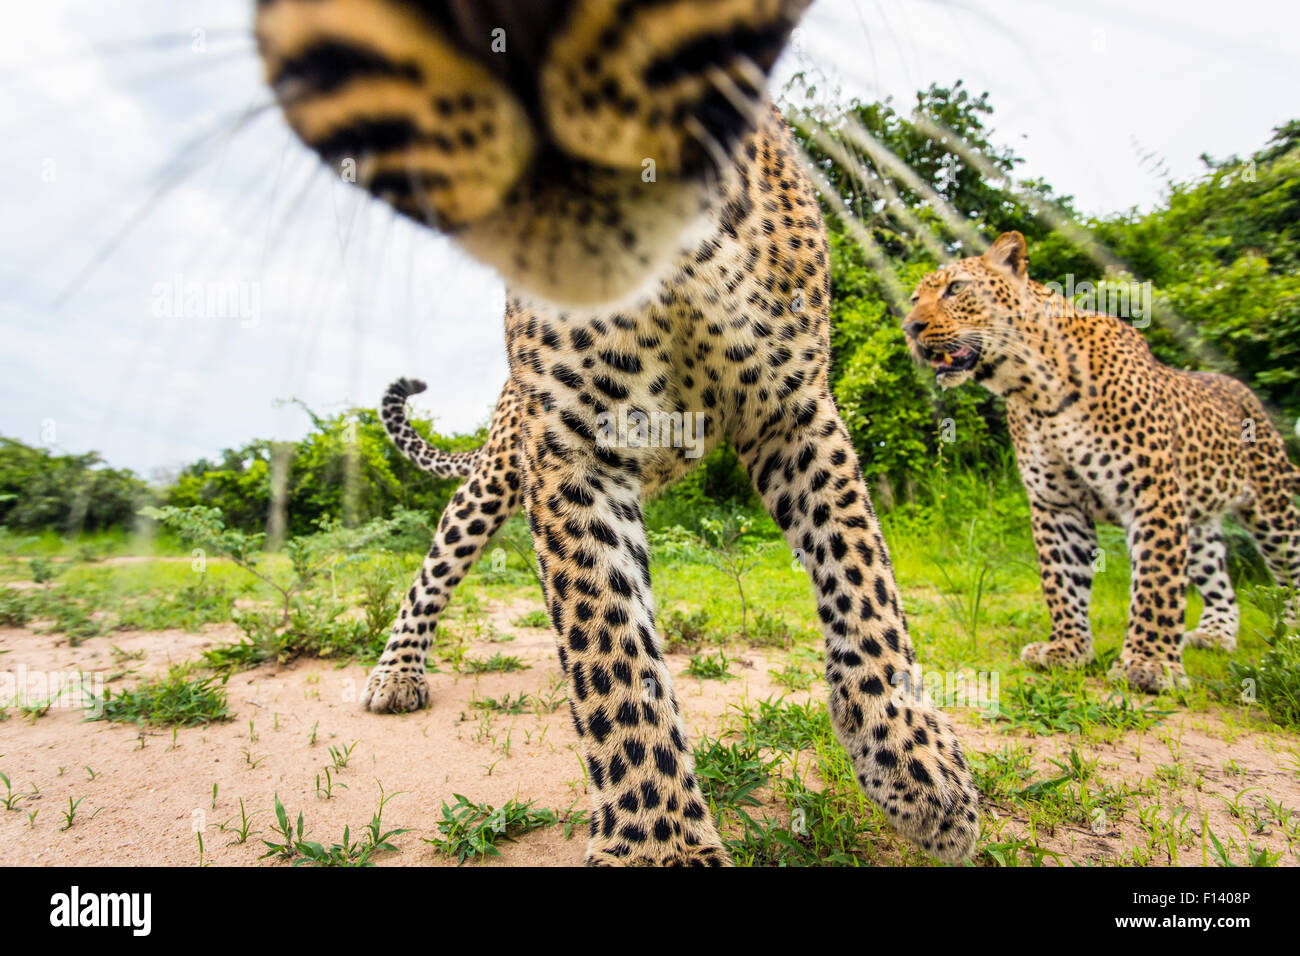 African leopard (Panthera pardus pardus) investigating remote camera. South Luangwa National Park, Zambia. - Stock Image